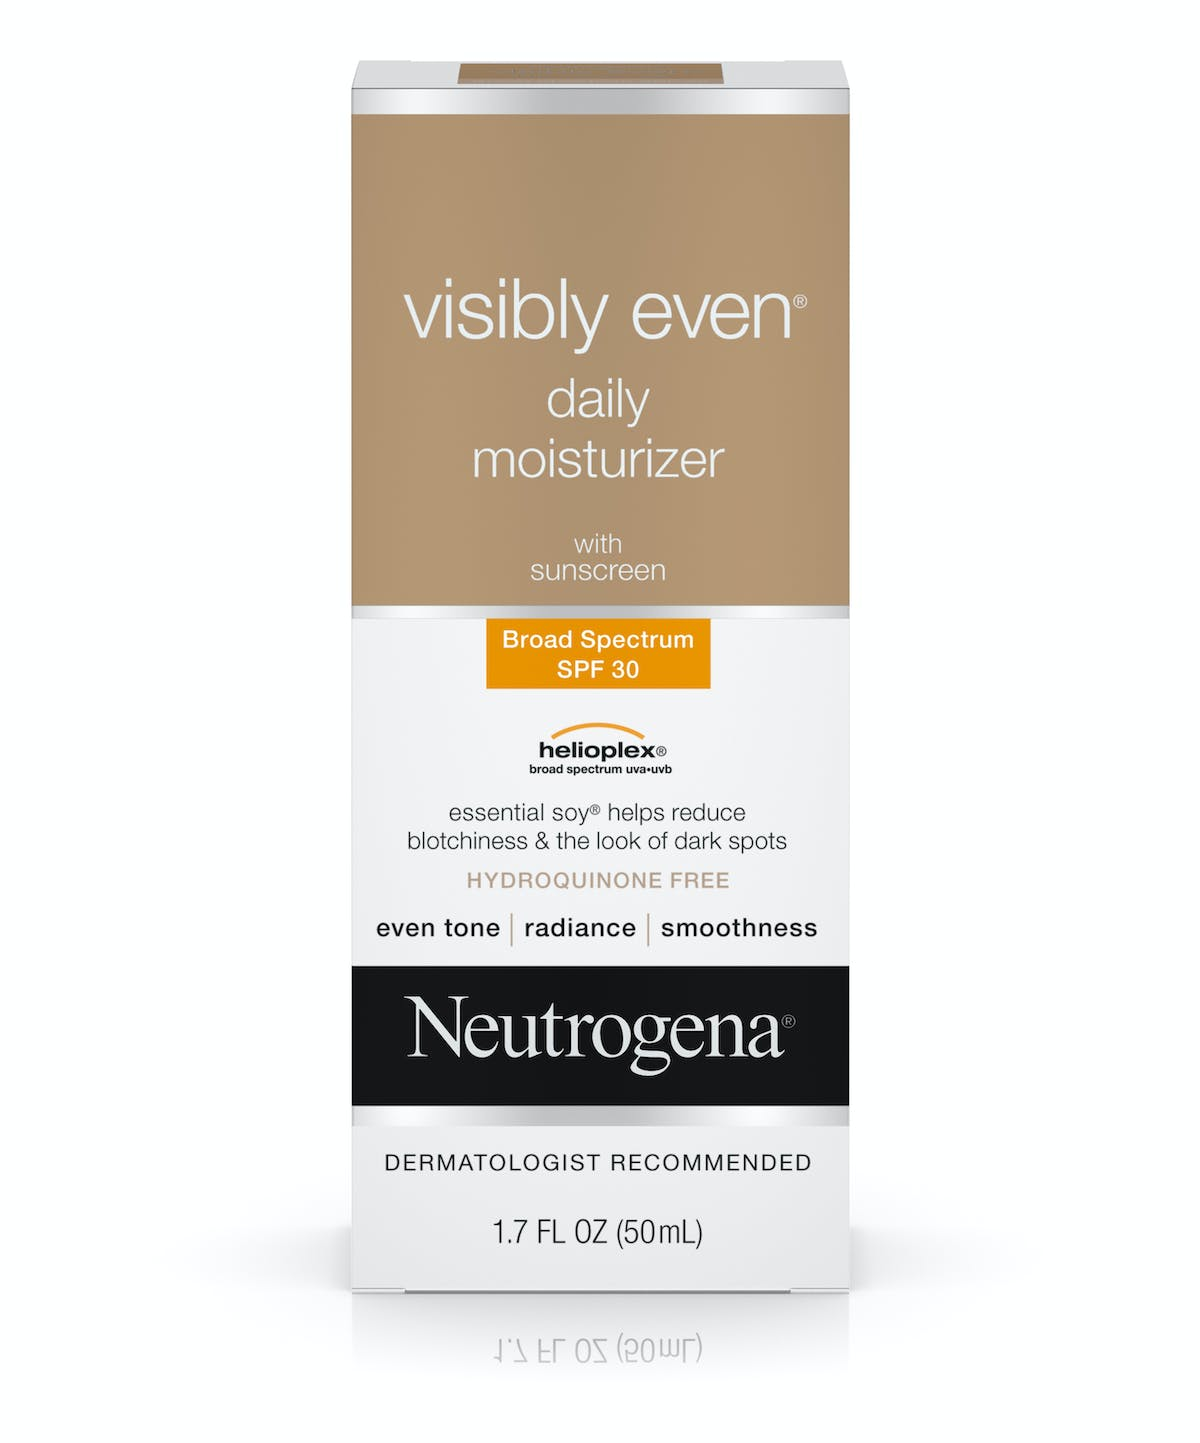 Visibly Even Daily Moisturizer With Sunscreen Spf 30 Neutrogena Cream Glow Krim Glowing Evenreg Broad Spectrum